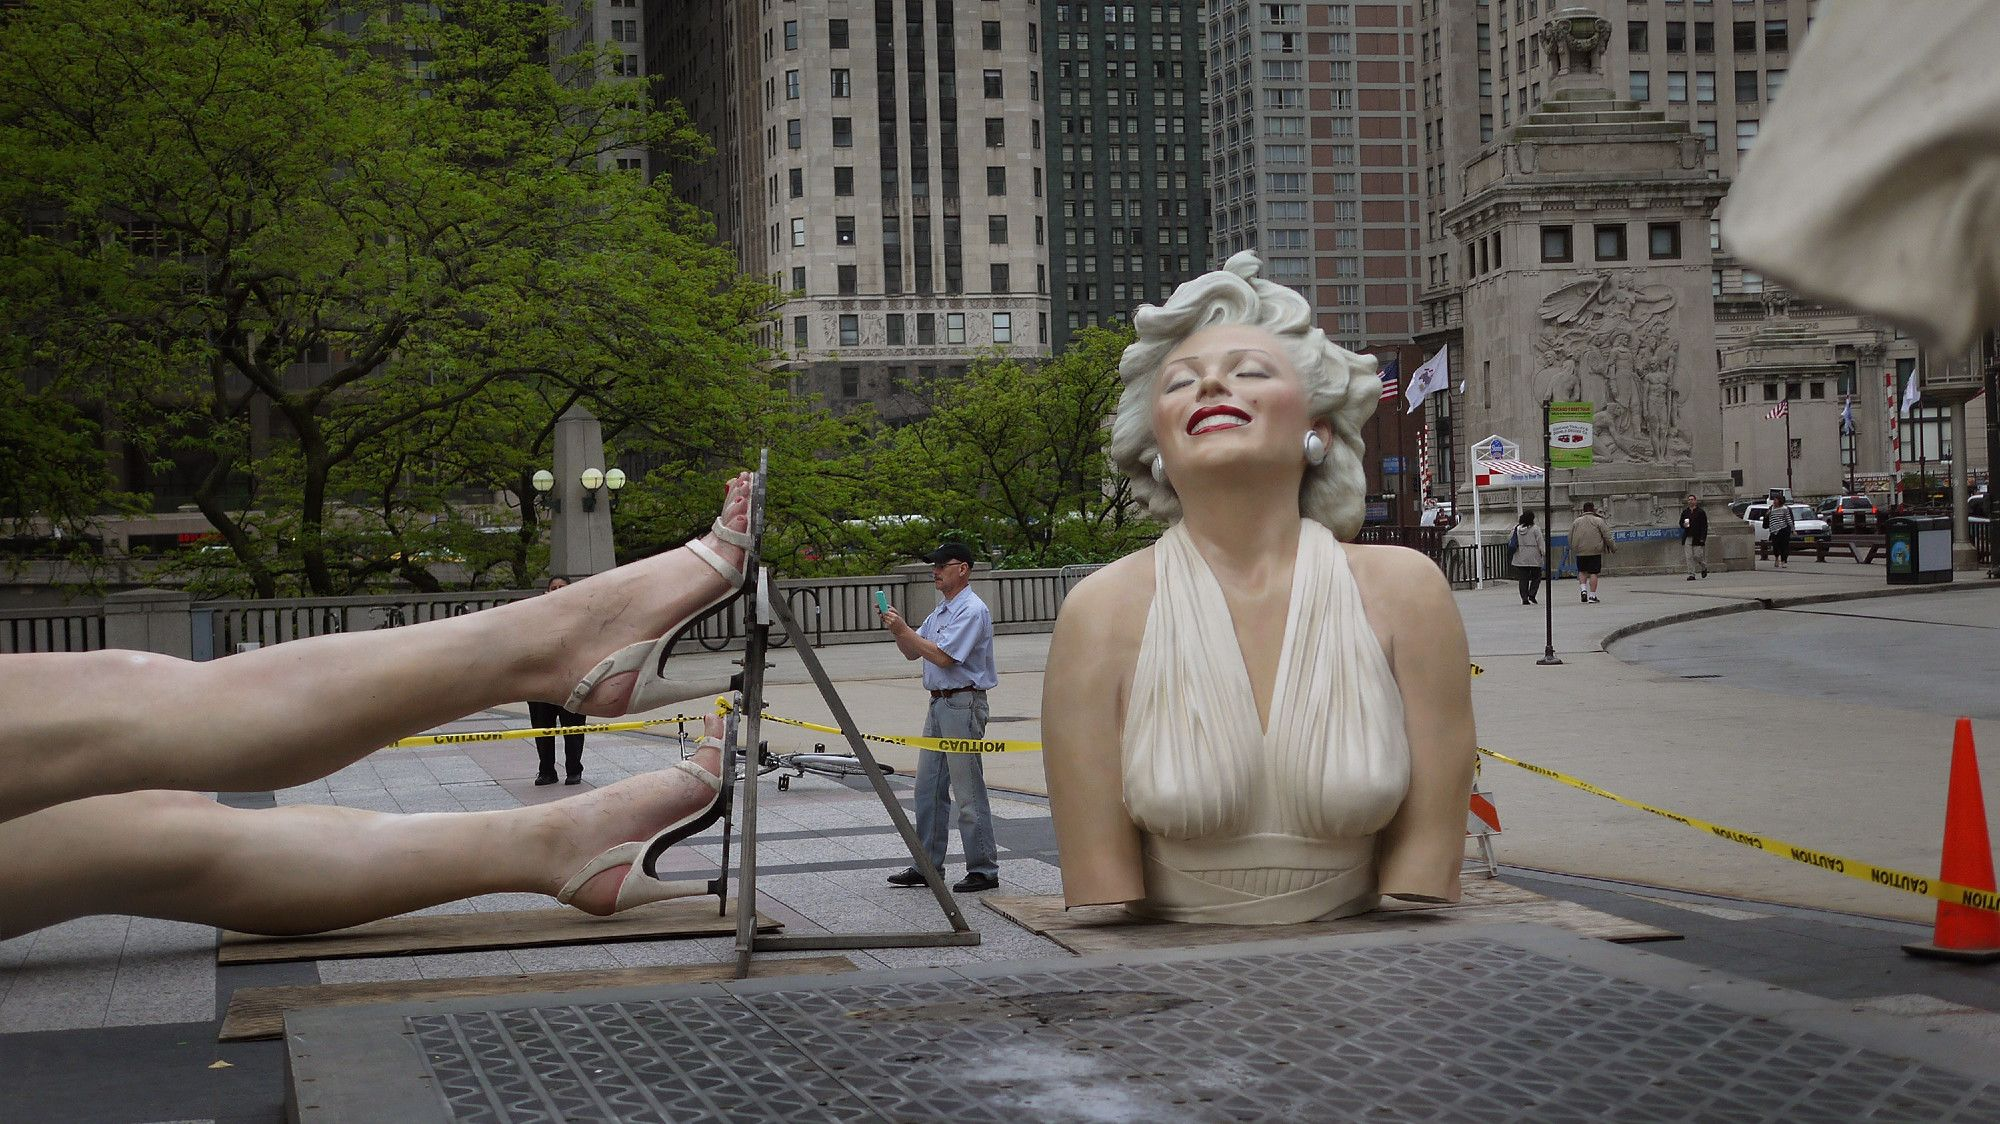 7 Controversial Modern Statues